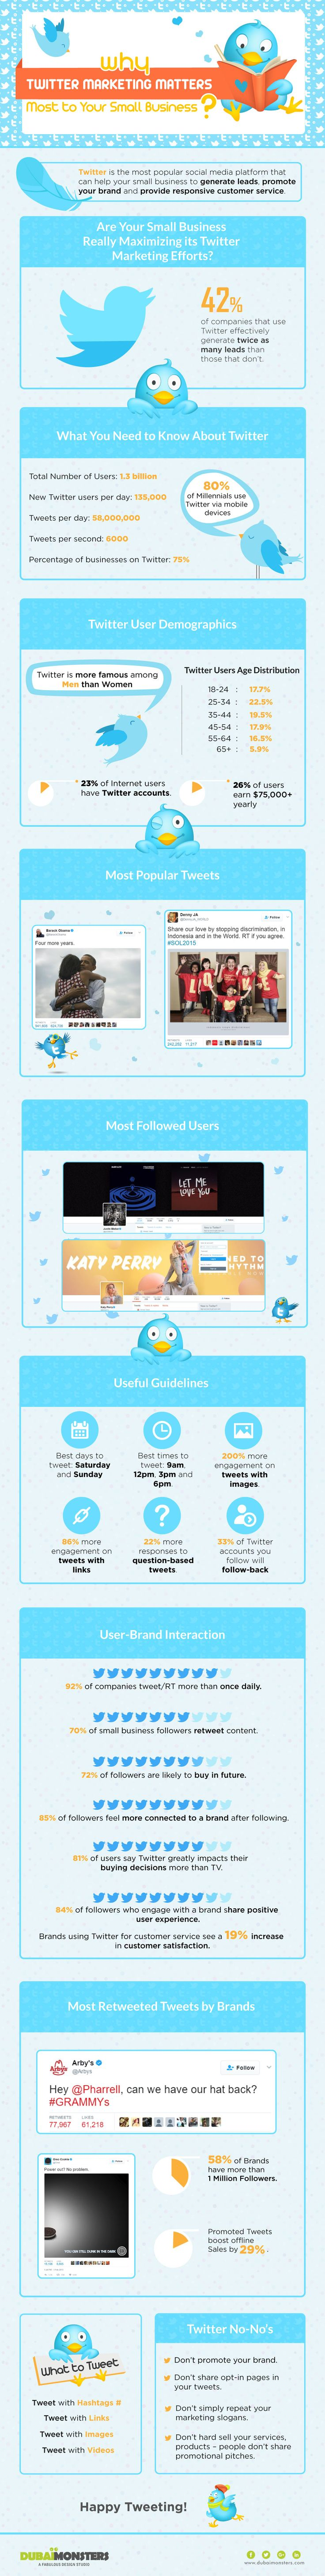 There are 645 #million users who use #Twitter and post 500 million tweets every day. If truth be told, Twitter is the most #popular #social media platform that provides a fertile #ground of #marketing opportunities to #small businesses and #startups. Around 66% of #businesses are on Twitter #Infographics #Socialmedia #digitalmarketing